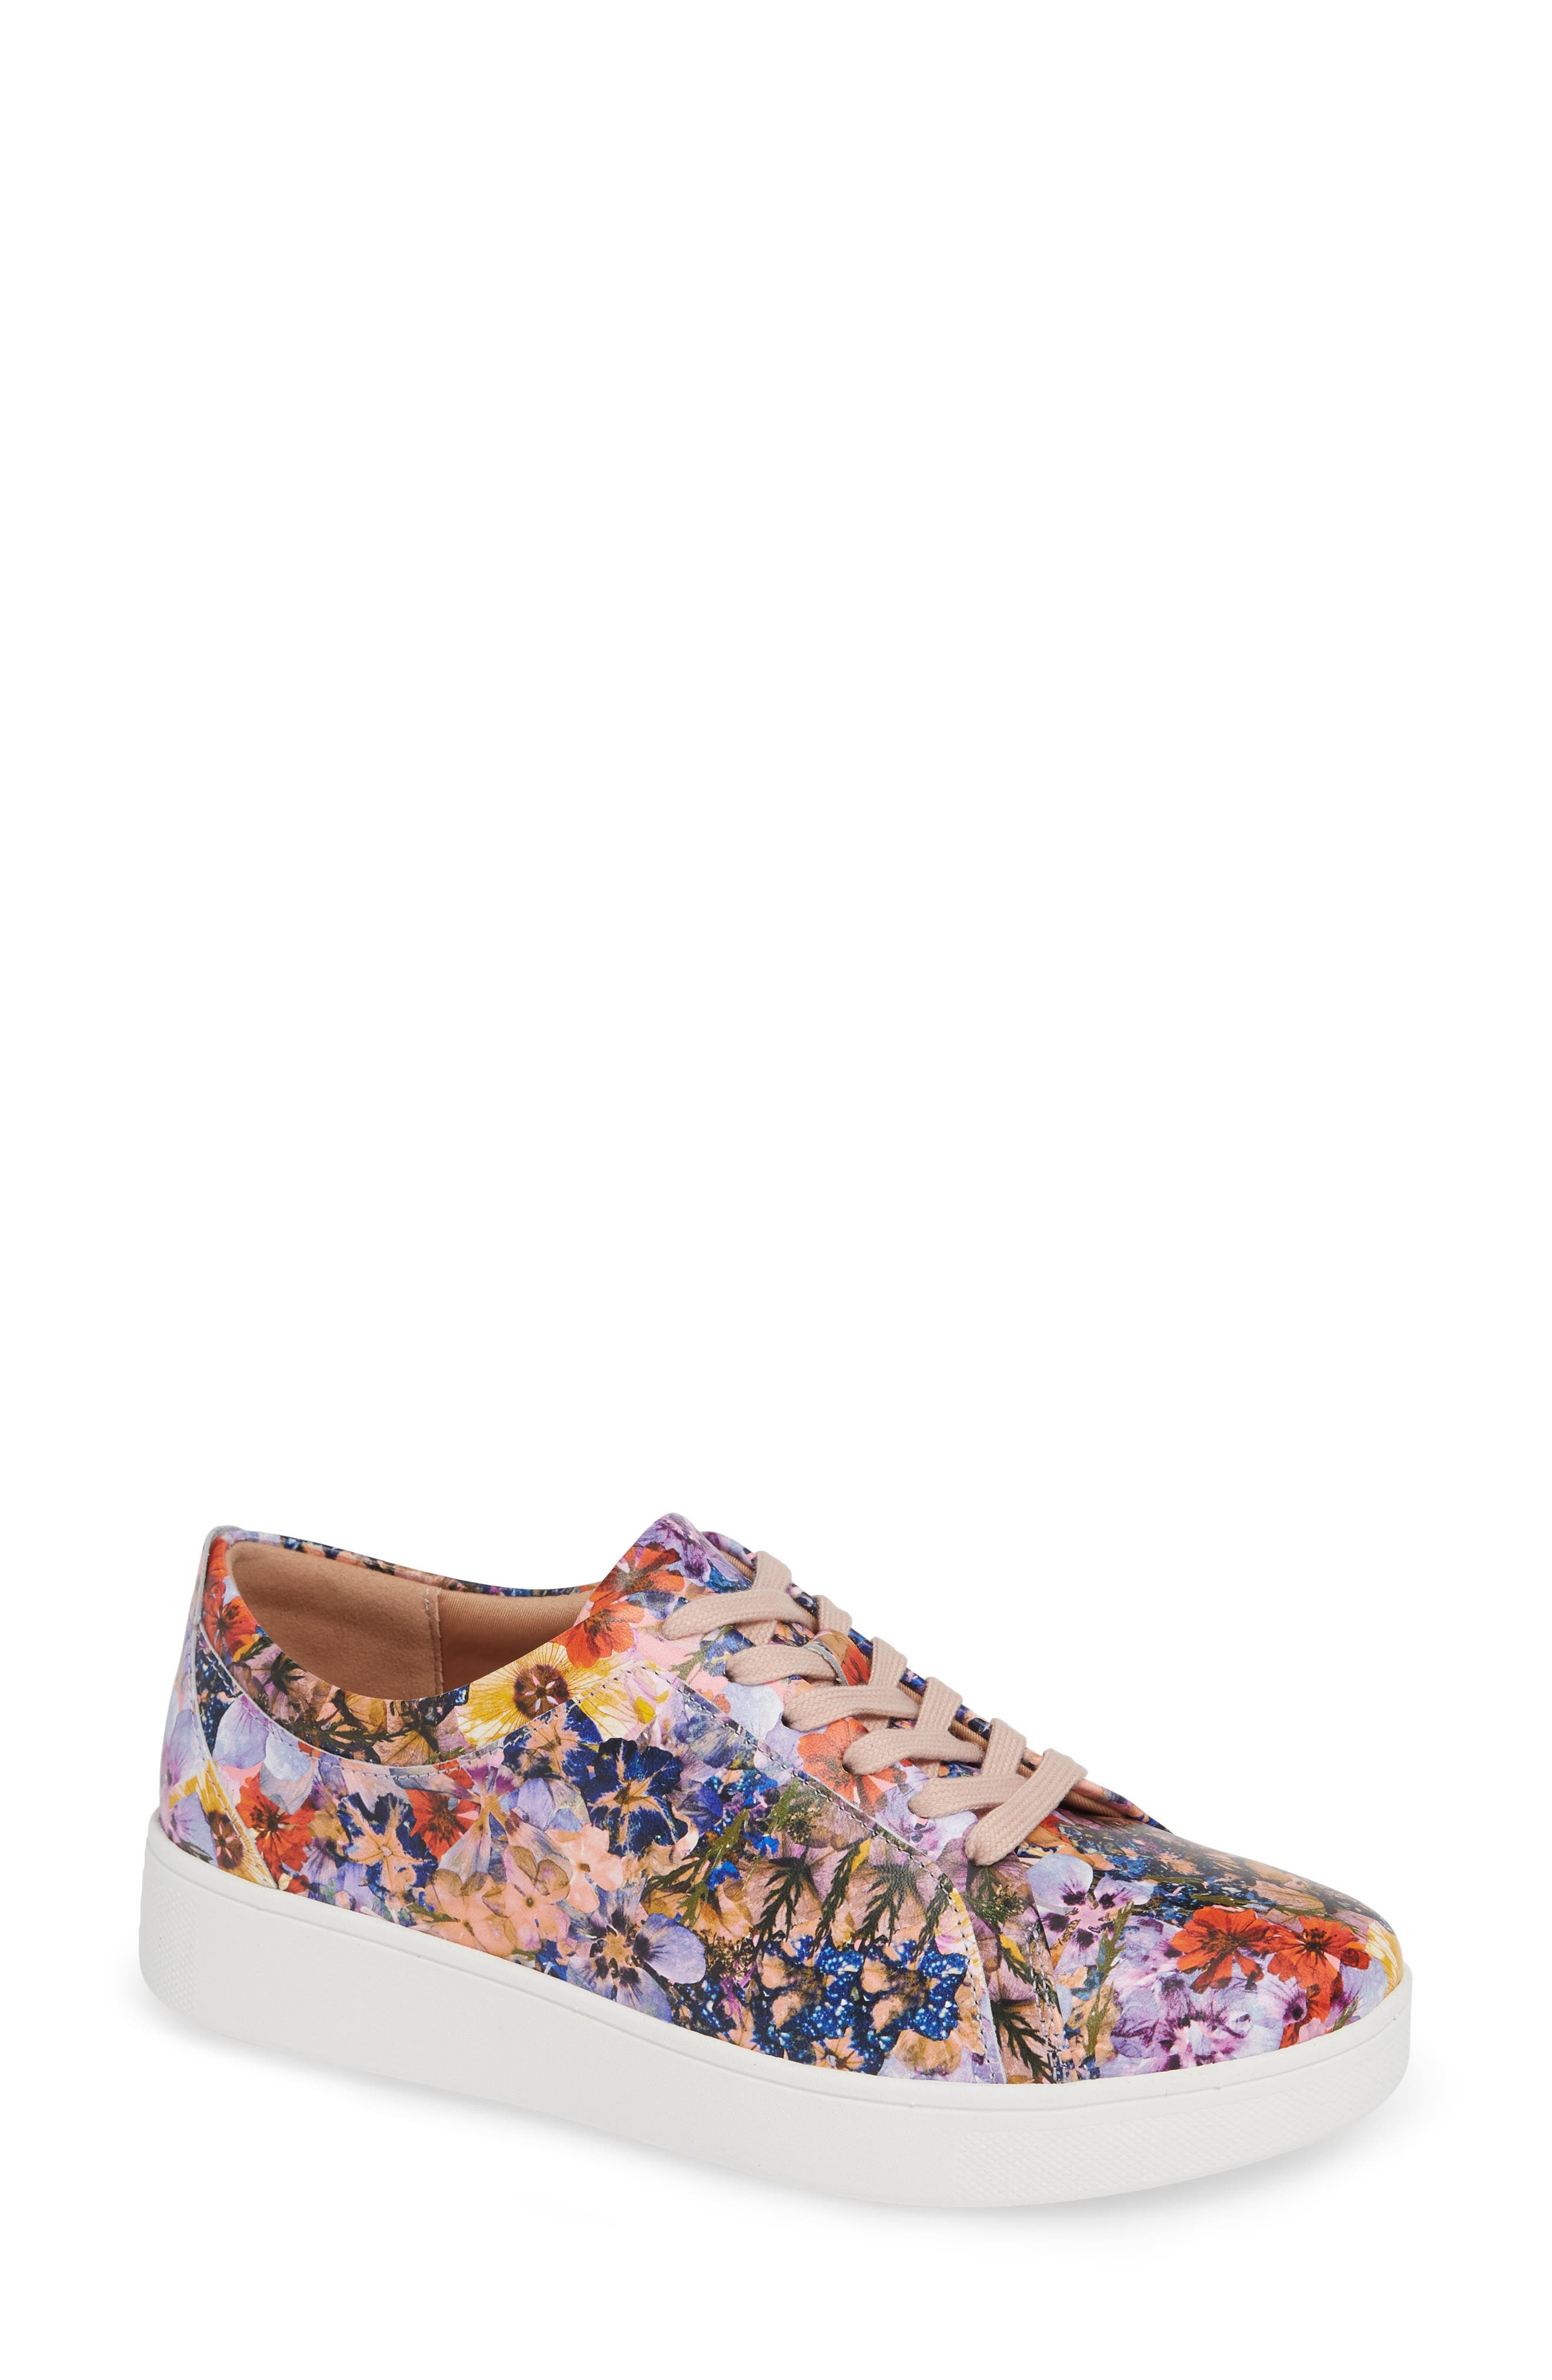 Rally Flower Crush Leather Sneaker in Oyster Pink Flower